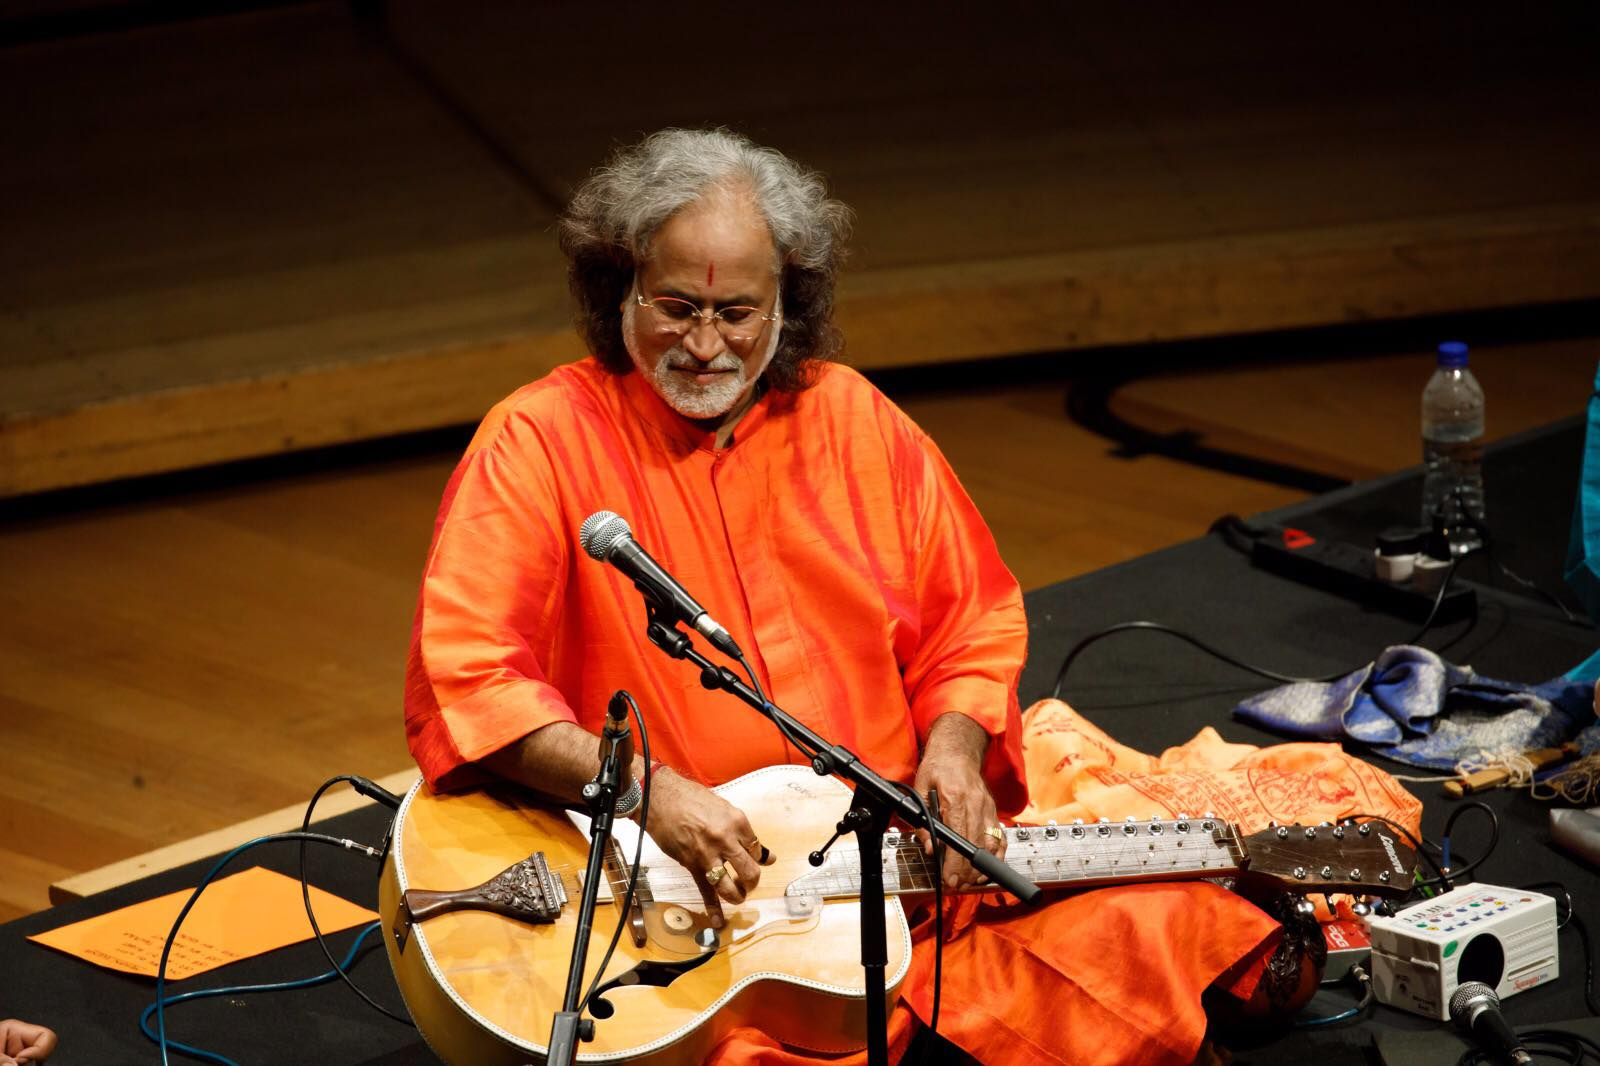 Legendary classical instrumentalist Pandit Vishwa Mohan Bhatt feels that classical music, culture and art bring out the human values in listeners all around the world. Photo courtesy: Esplanade- Theatres on the Bay